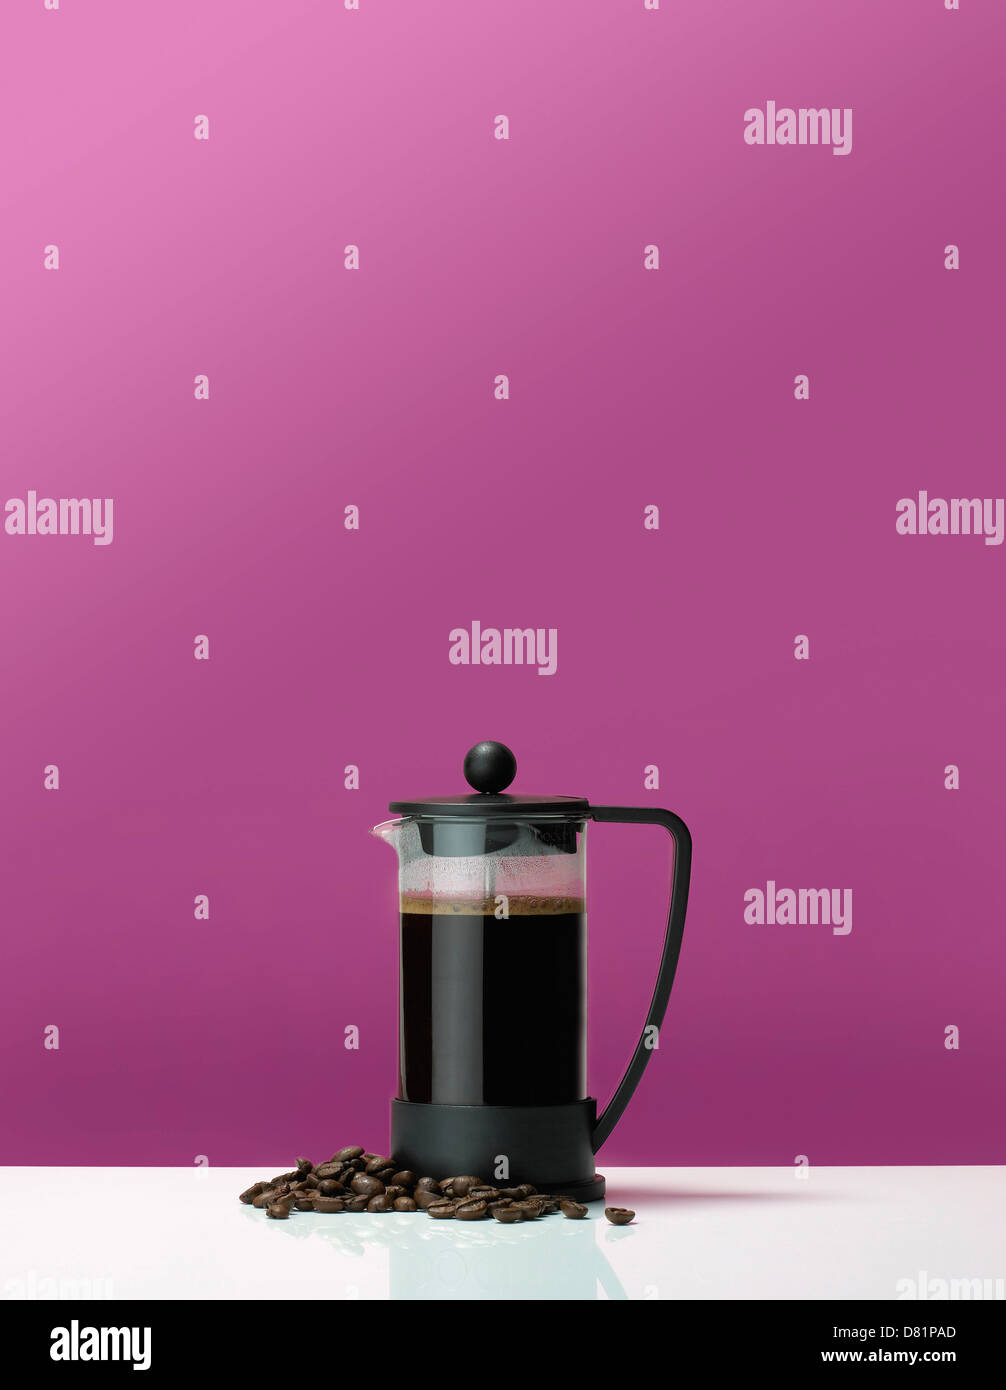 Coffee pot cafetiere on a table with coffee beans against a pink background Stock Photo